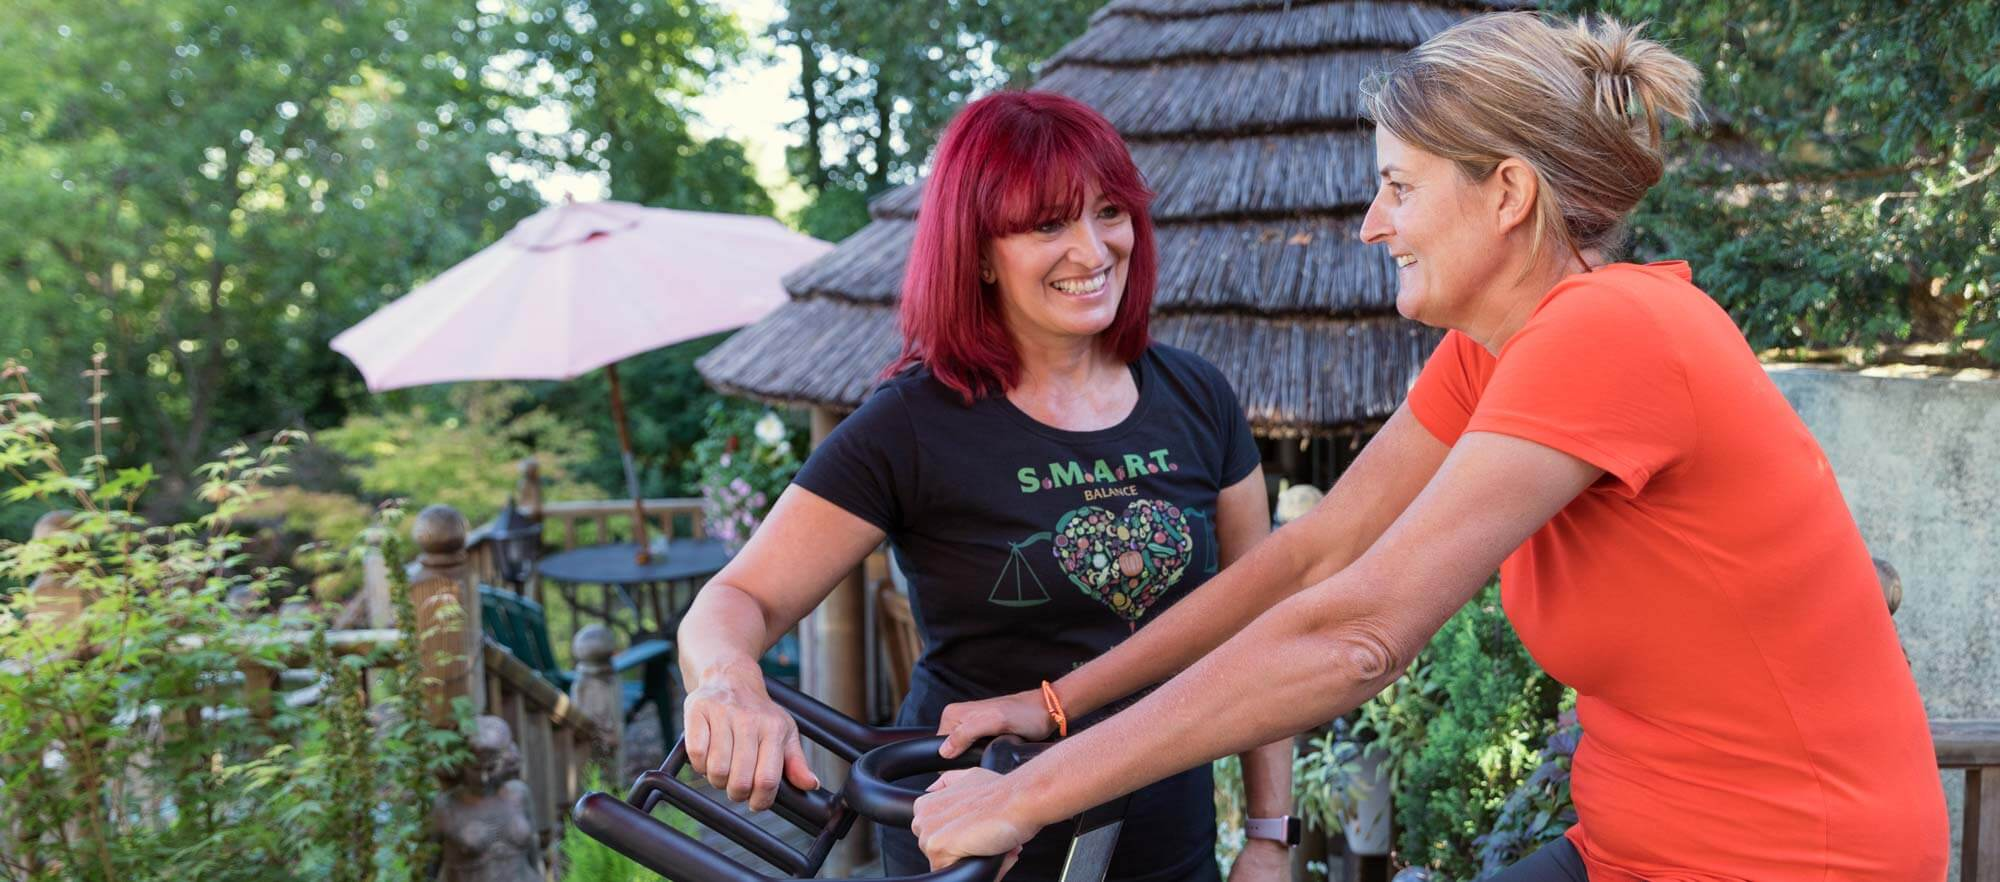 fitness and wellness training for women over 40